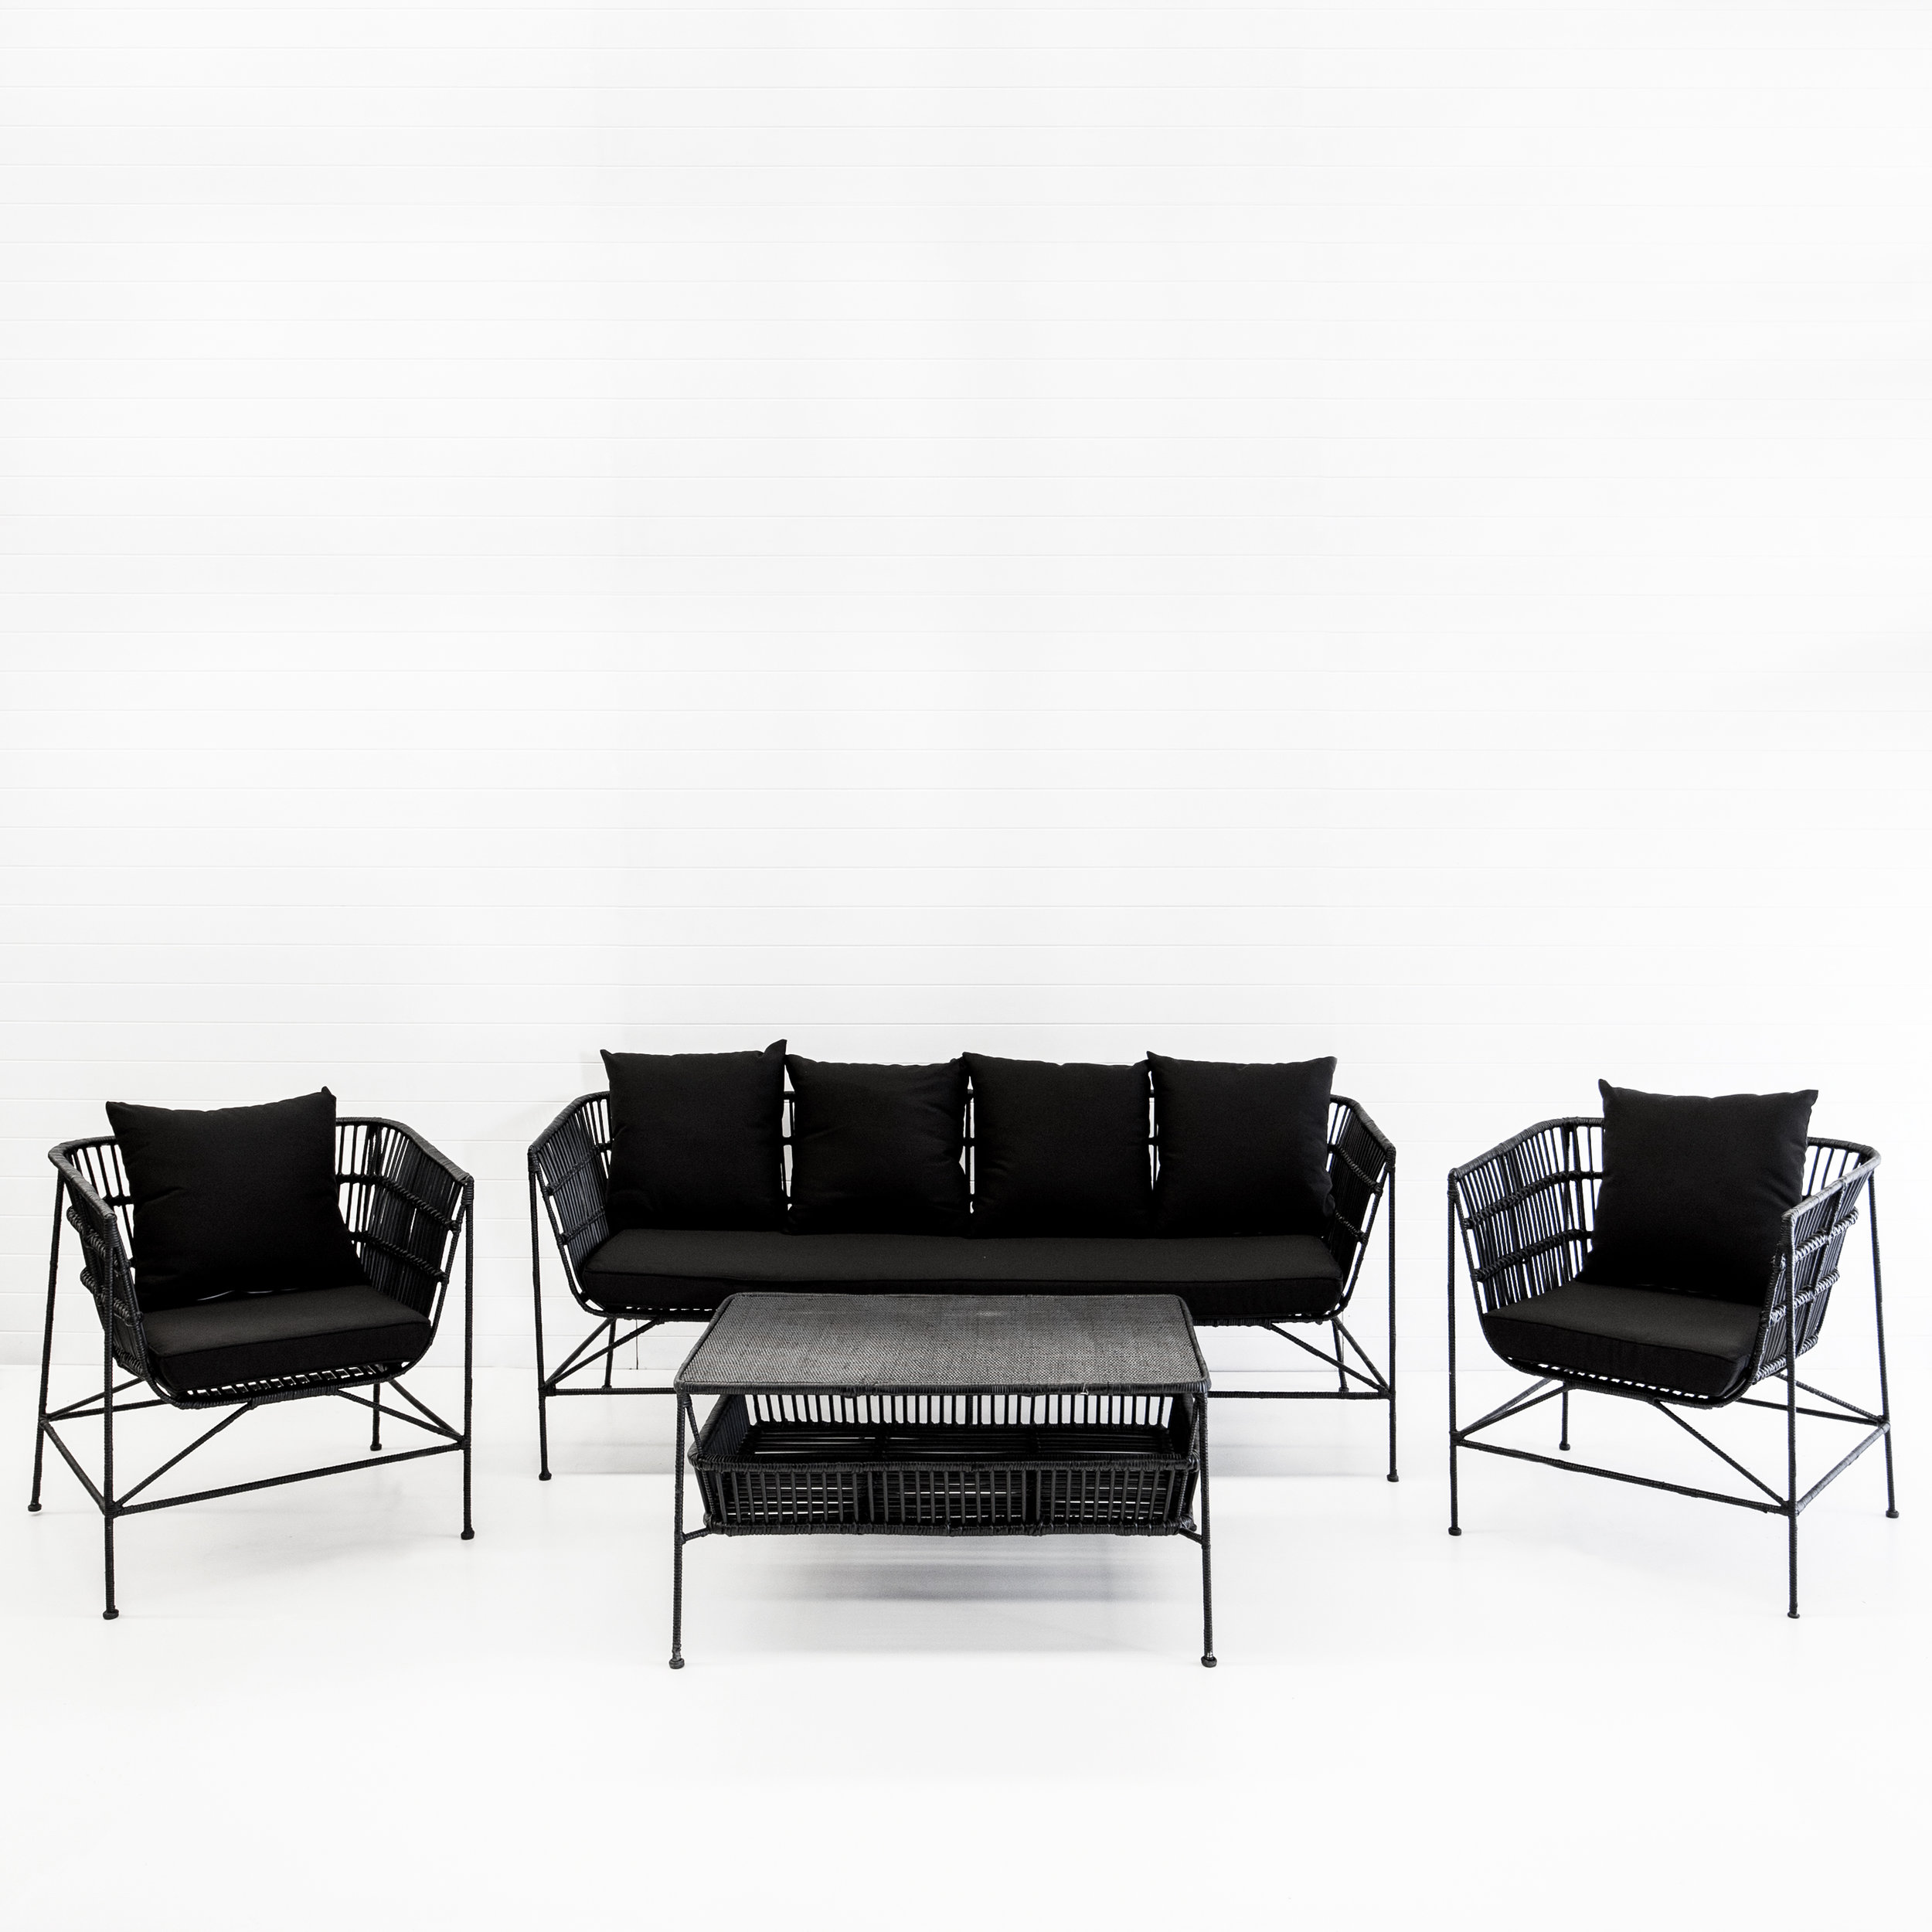 INDIE BLACK SOFA PACKAGE WITH BLACK CUSHIONS